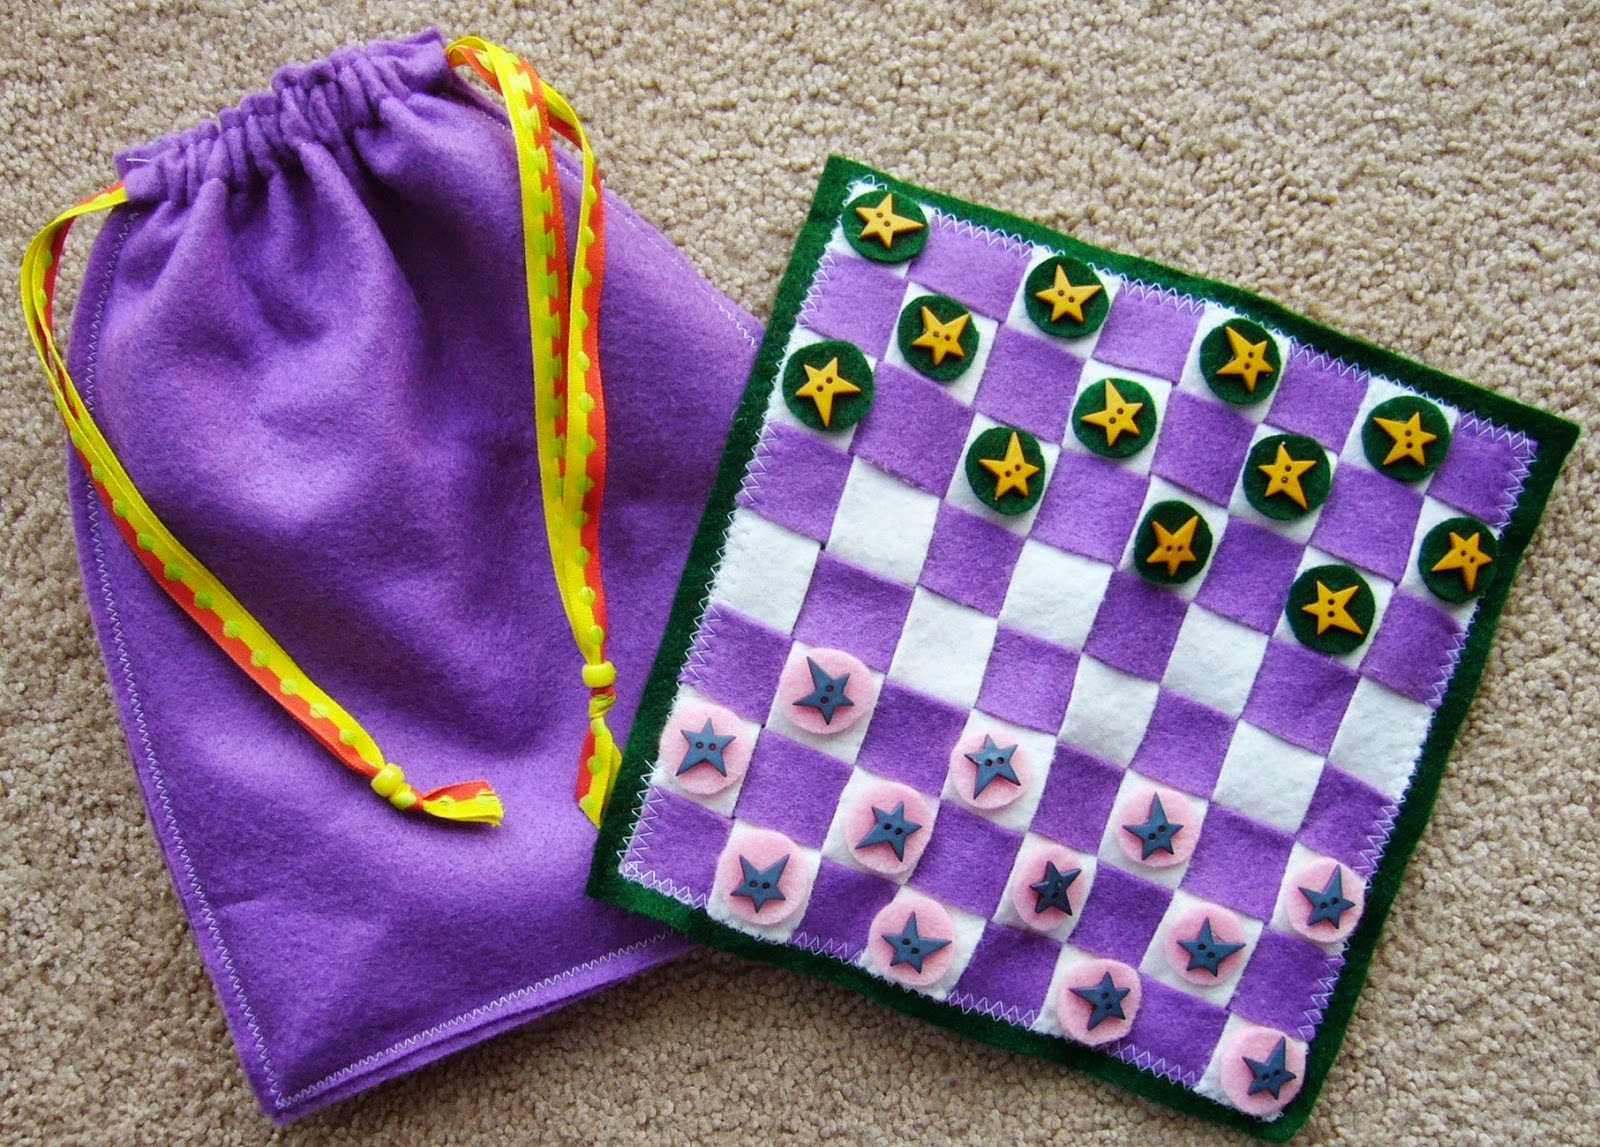 http://www.simplyshoeboxes.com/2015/01/diy-travel-checkers-game-with.html